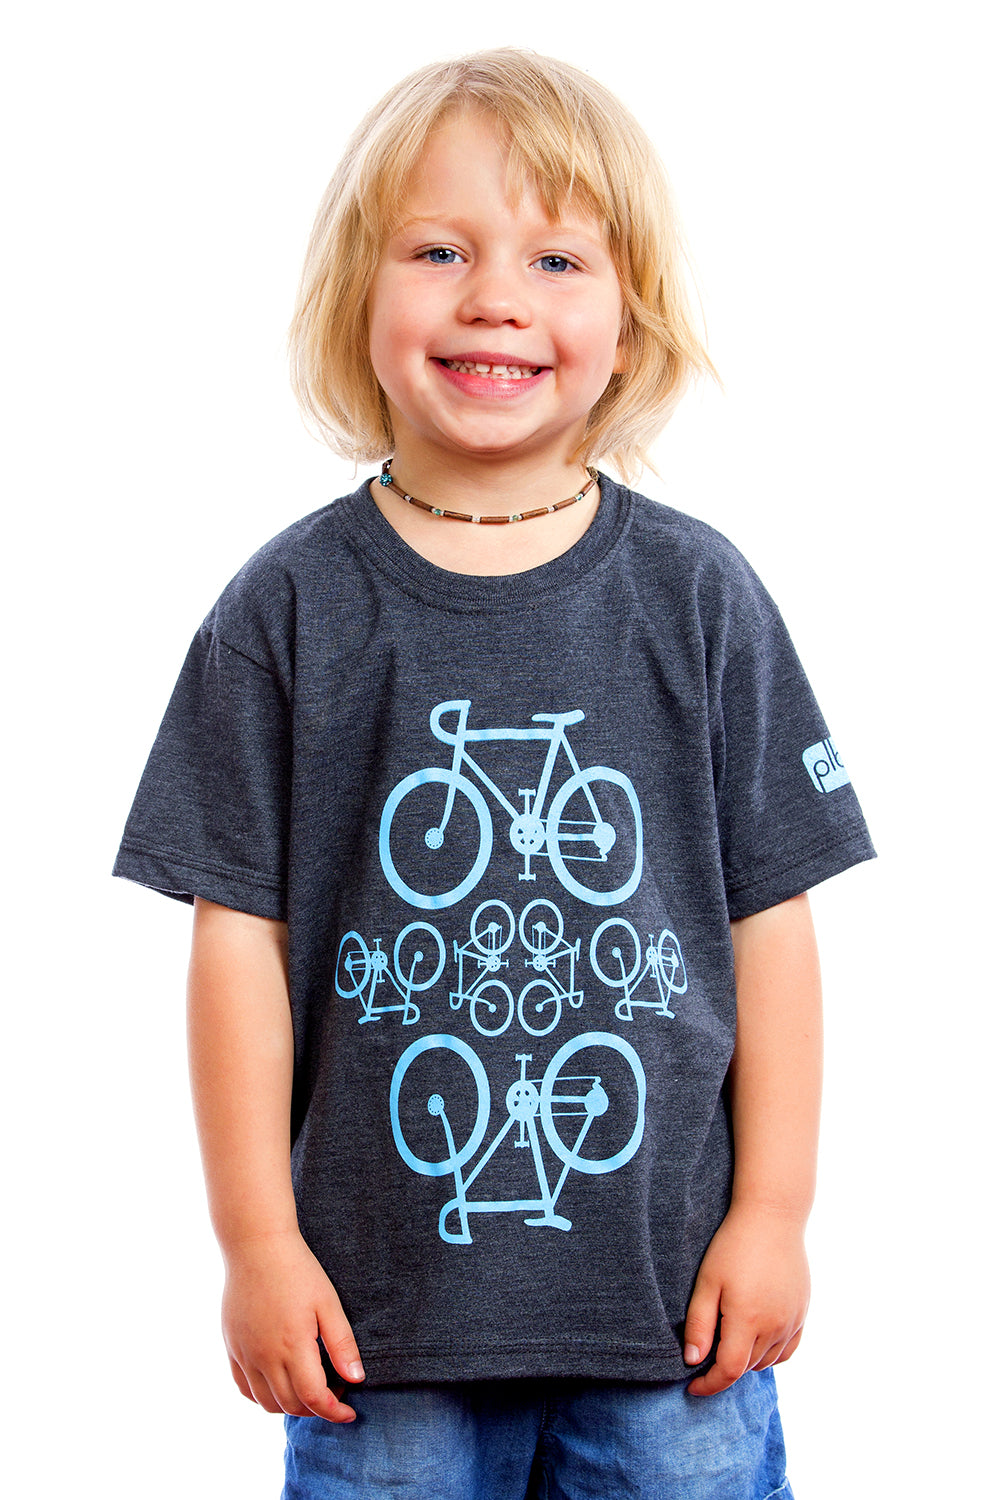 Kids Bicycles Shirt Graphic Tee Tshirt | Montreal, Canada Vélo Bicyclette Bicicleta Playera camiseta nino enfant